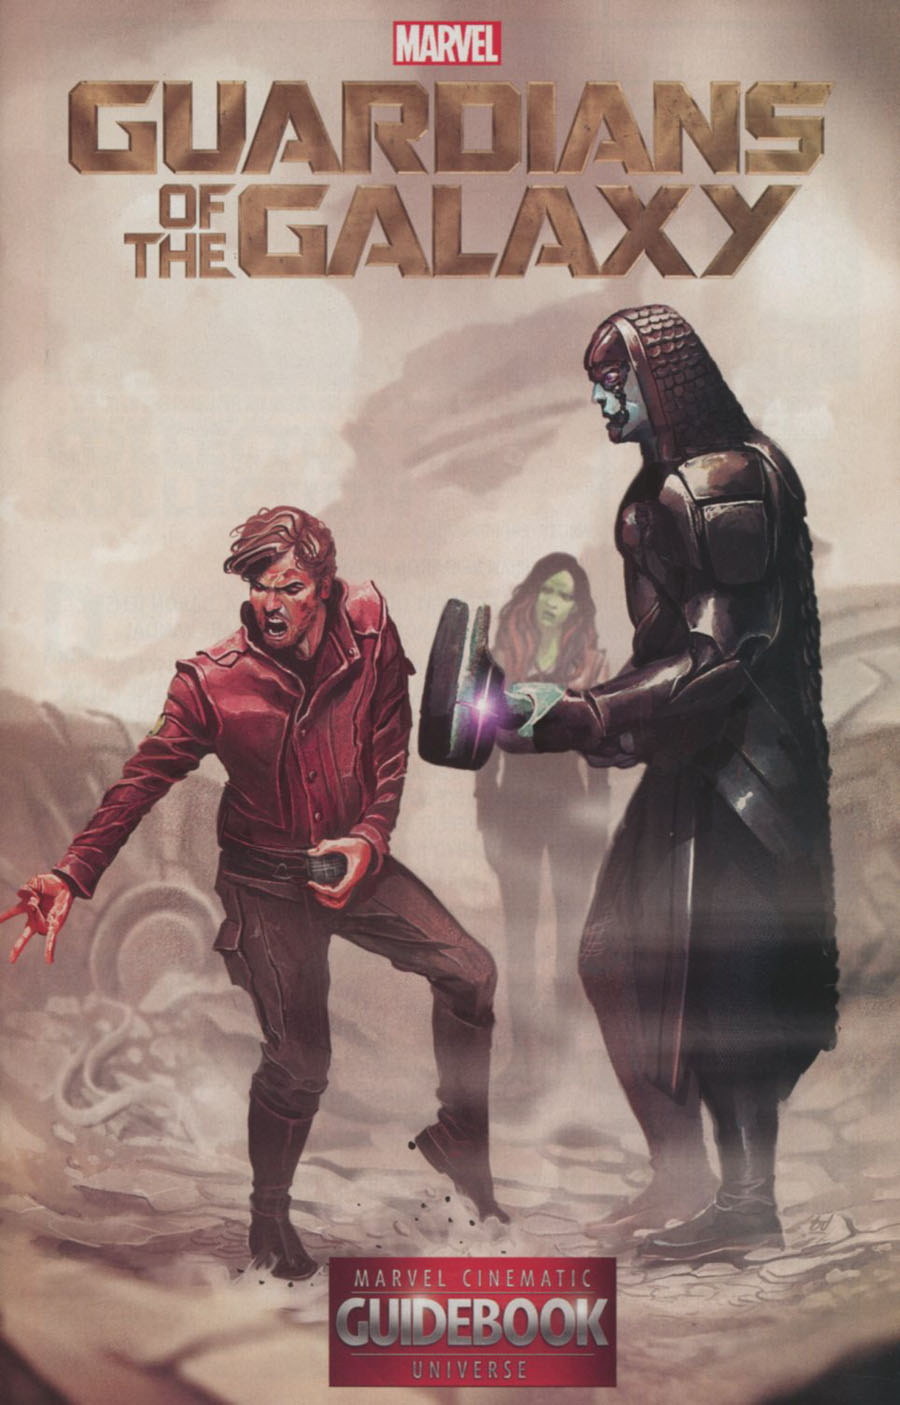 Guidebook To The Marvel Cinematic Universe Marvels Guardians Of The Galaxy #1